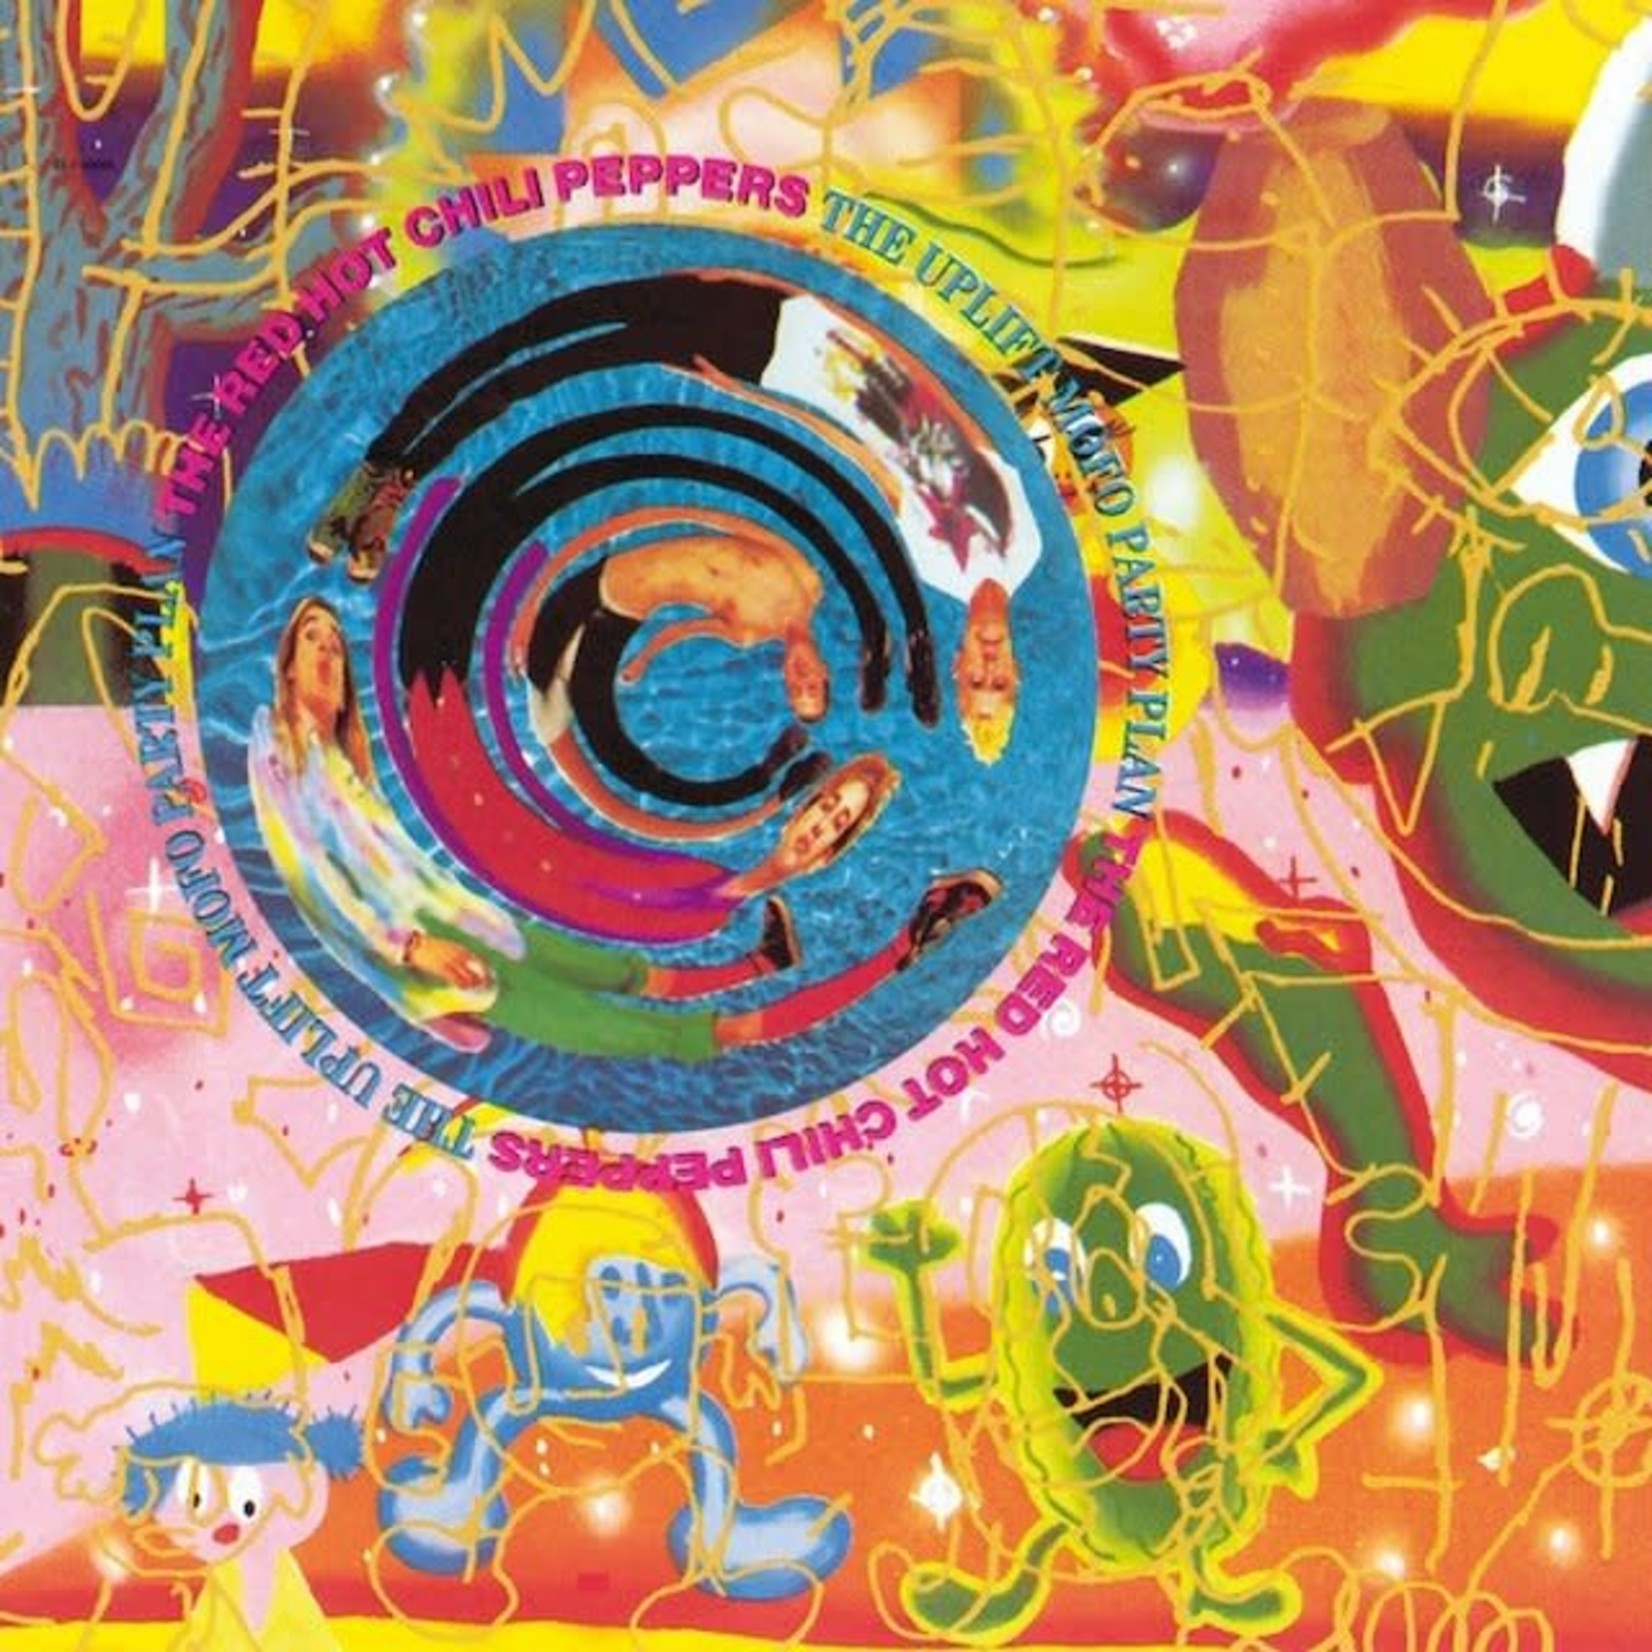 Vinyl Red Hot Chili Peppers - The Uplift Mofo Party Plan